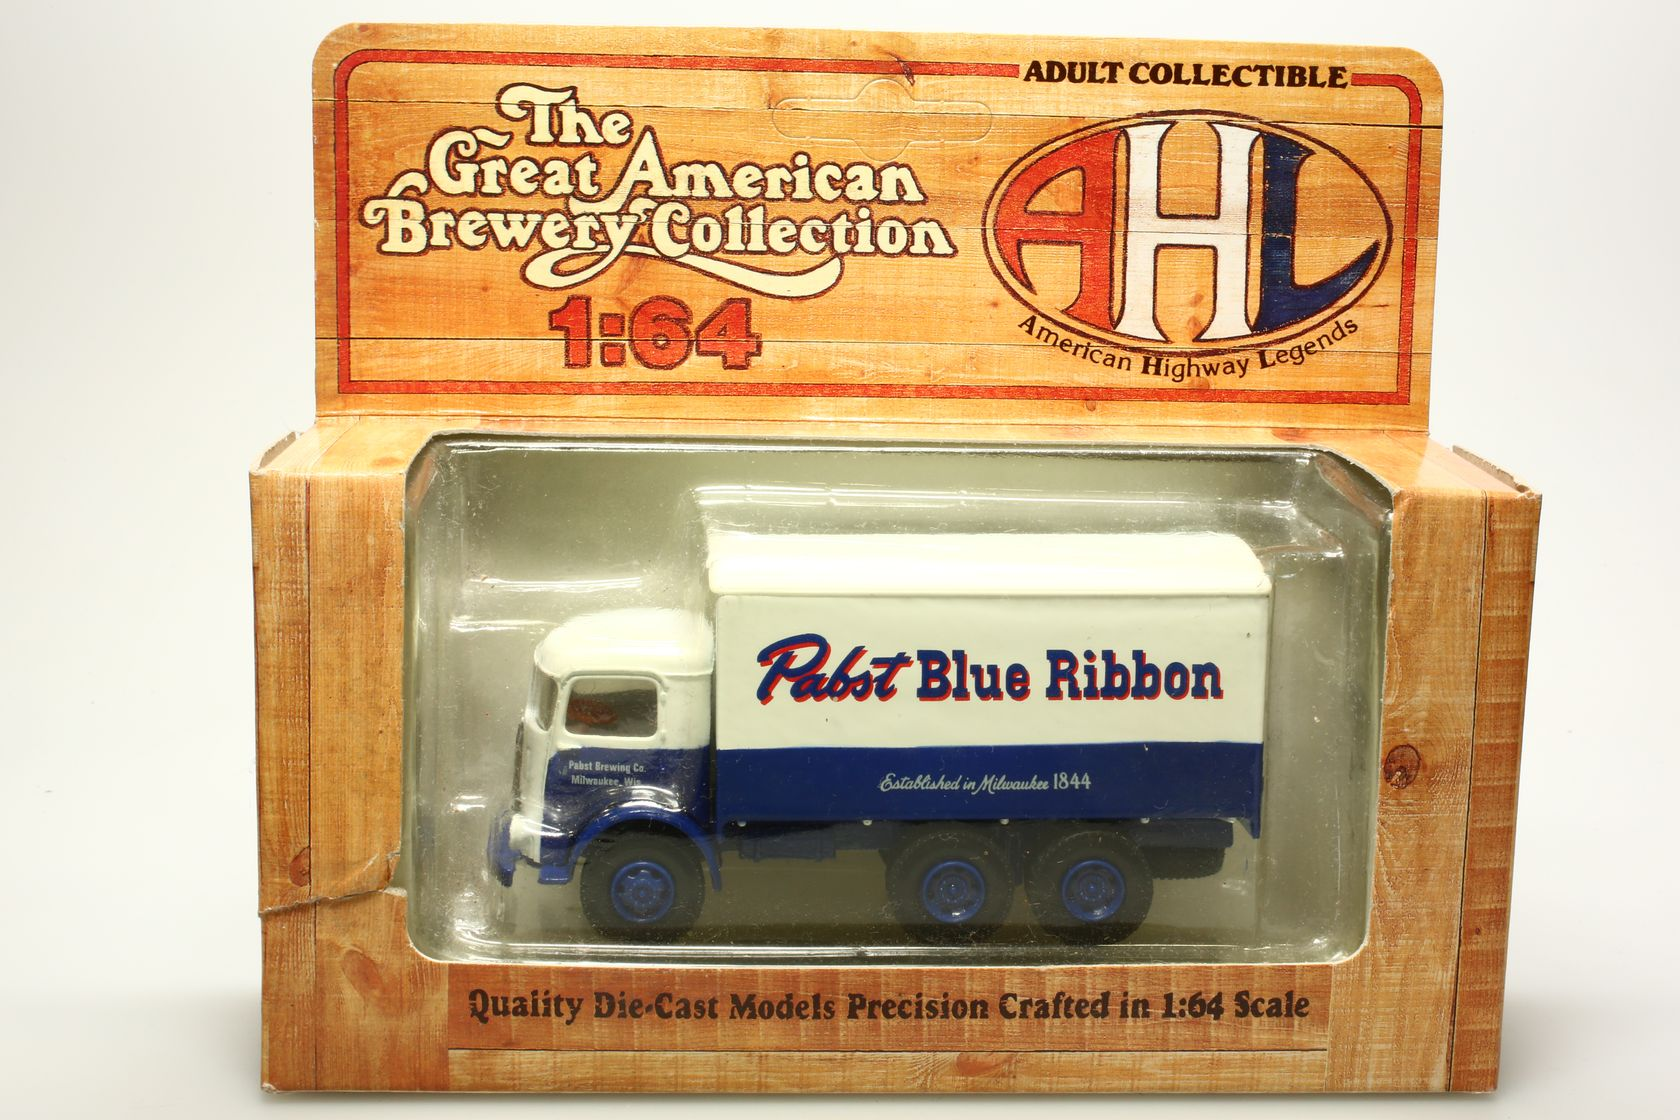 Mack CJ Pabst blue ribbon 1/64